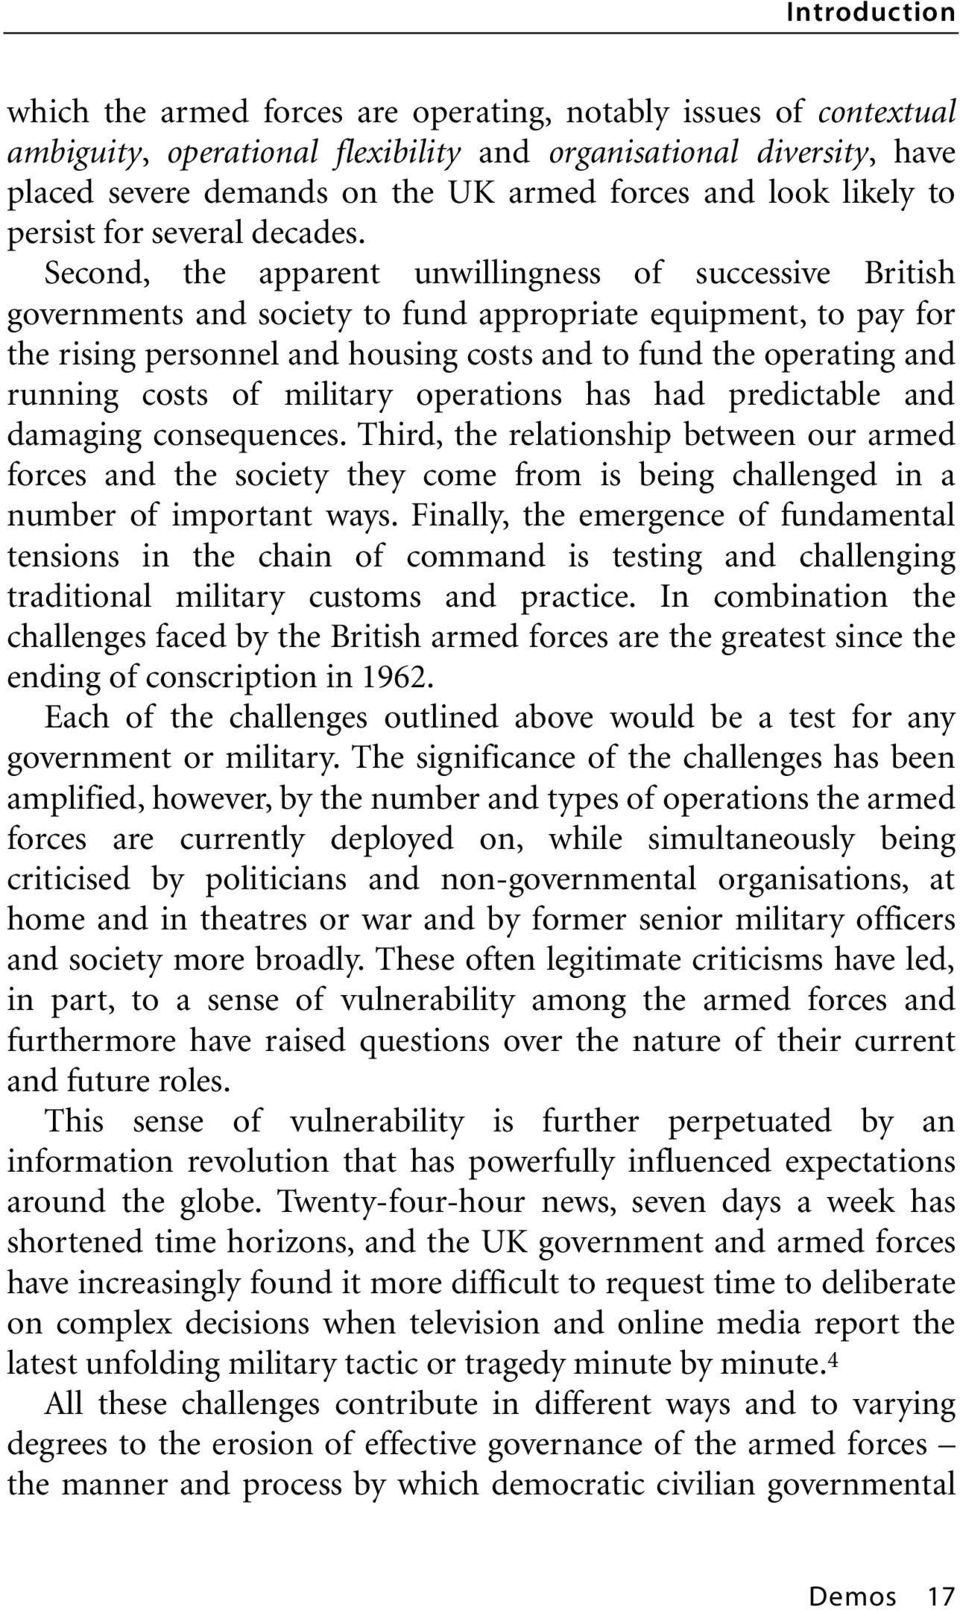 Second, the apparent unwillingness of successive British governments and society to fund appropriate equipment, to pay for the rising personnel and housing costs and to fund the operating and running